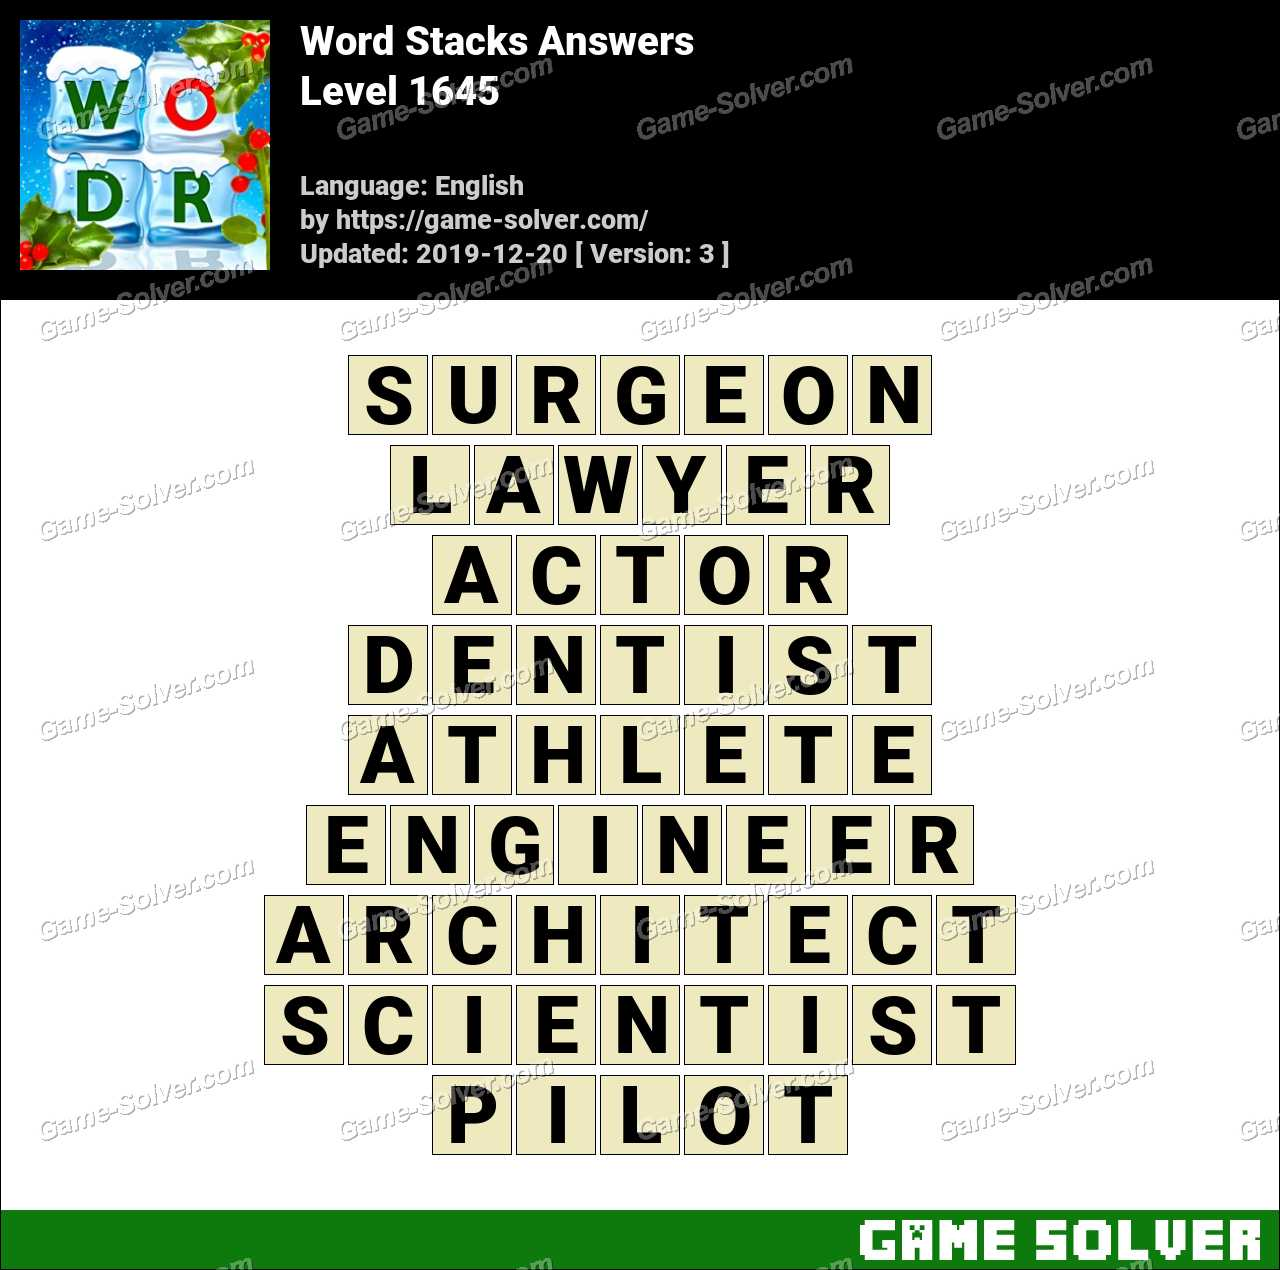 Word Stacks Level 1645 Answers